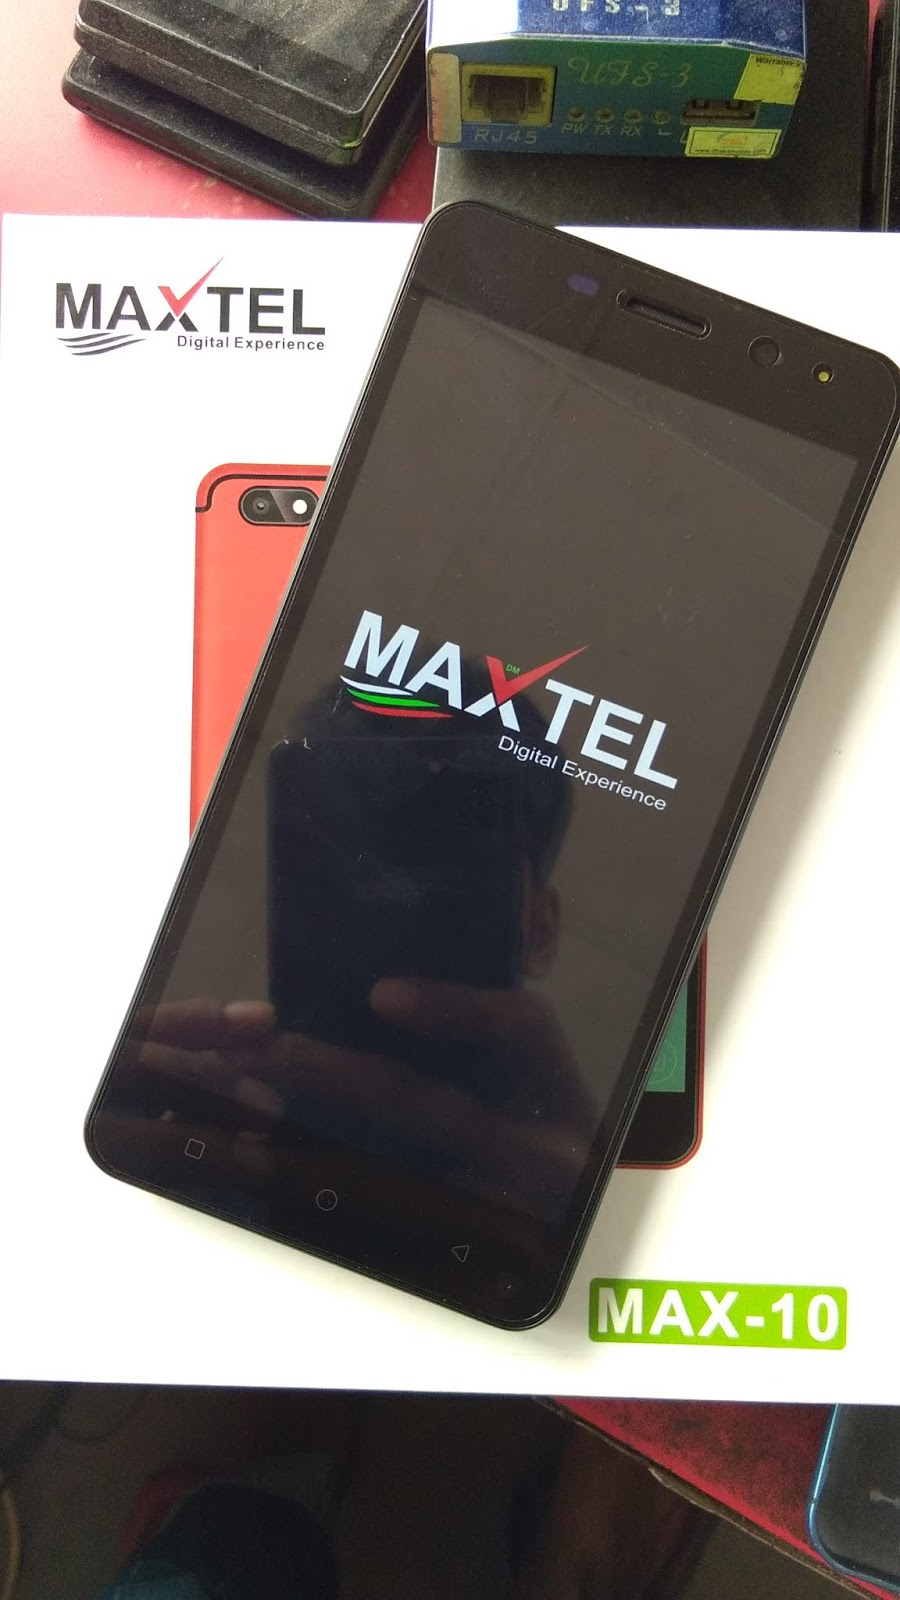 Maxtel Max-10 MT6580_Free_MAX-10 V7 1__ALPS L1 MP6 V2 Flash